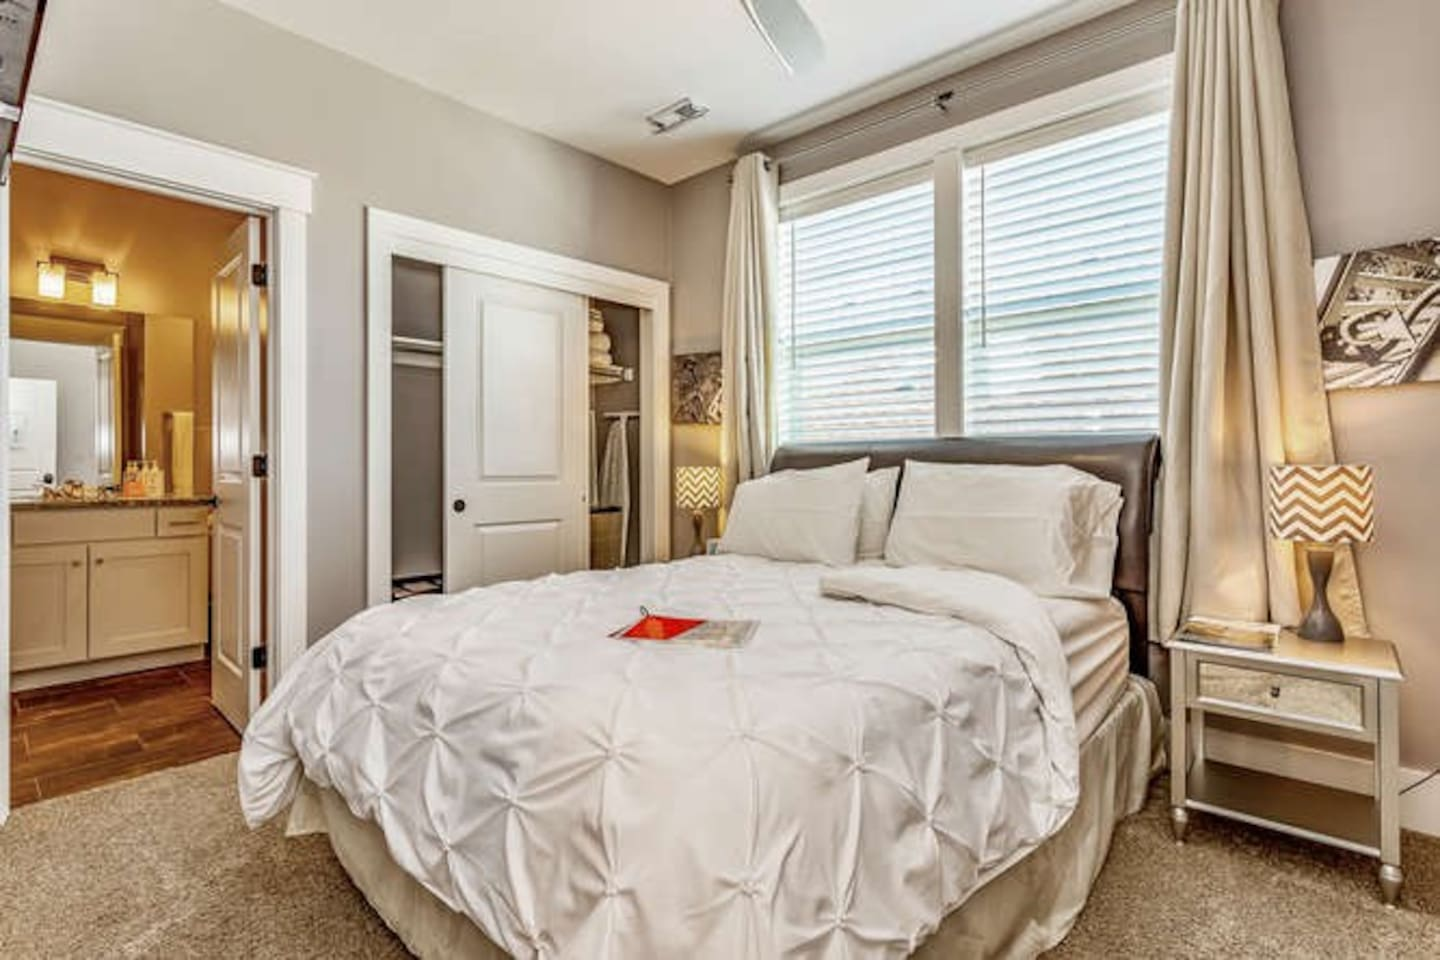 Private bedroom includes super comfy queen bed, blinds & blackout curtains for a great nights sleep.